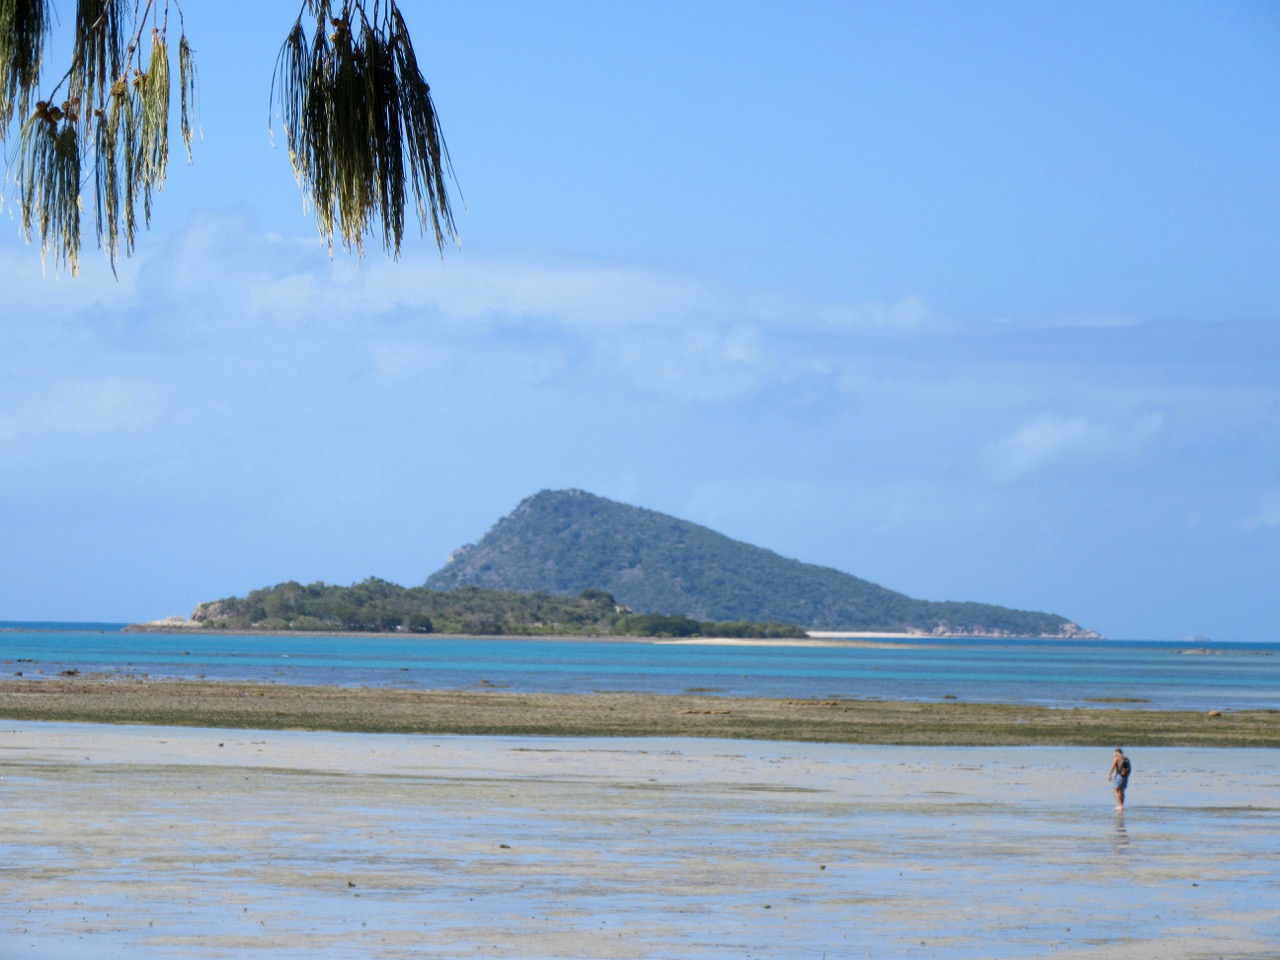 The view of the Whitsundays from Dingo Beach.